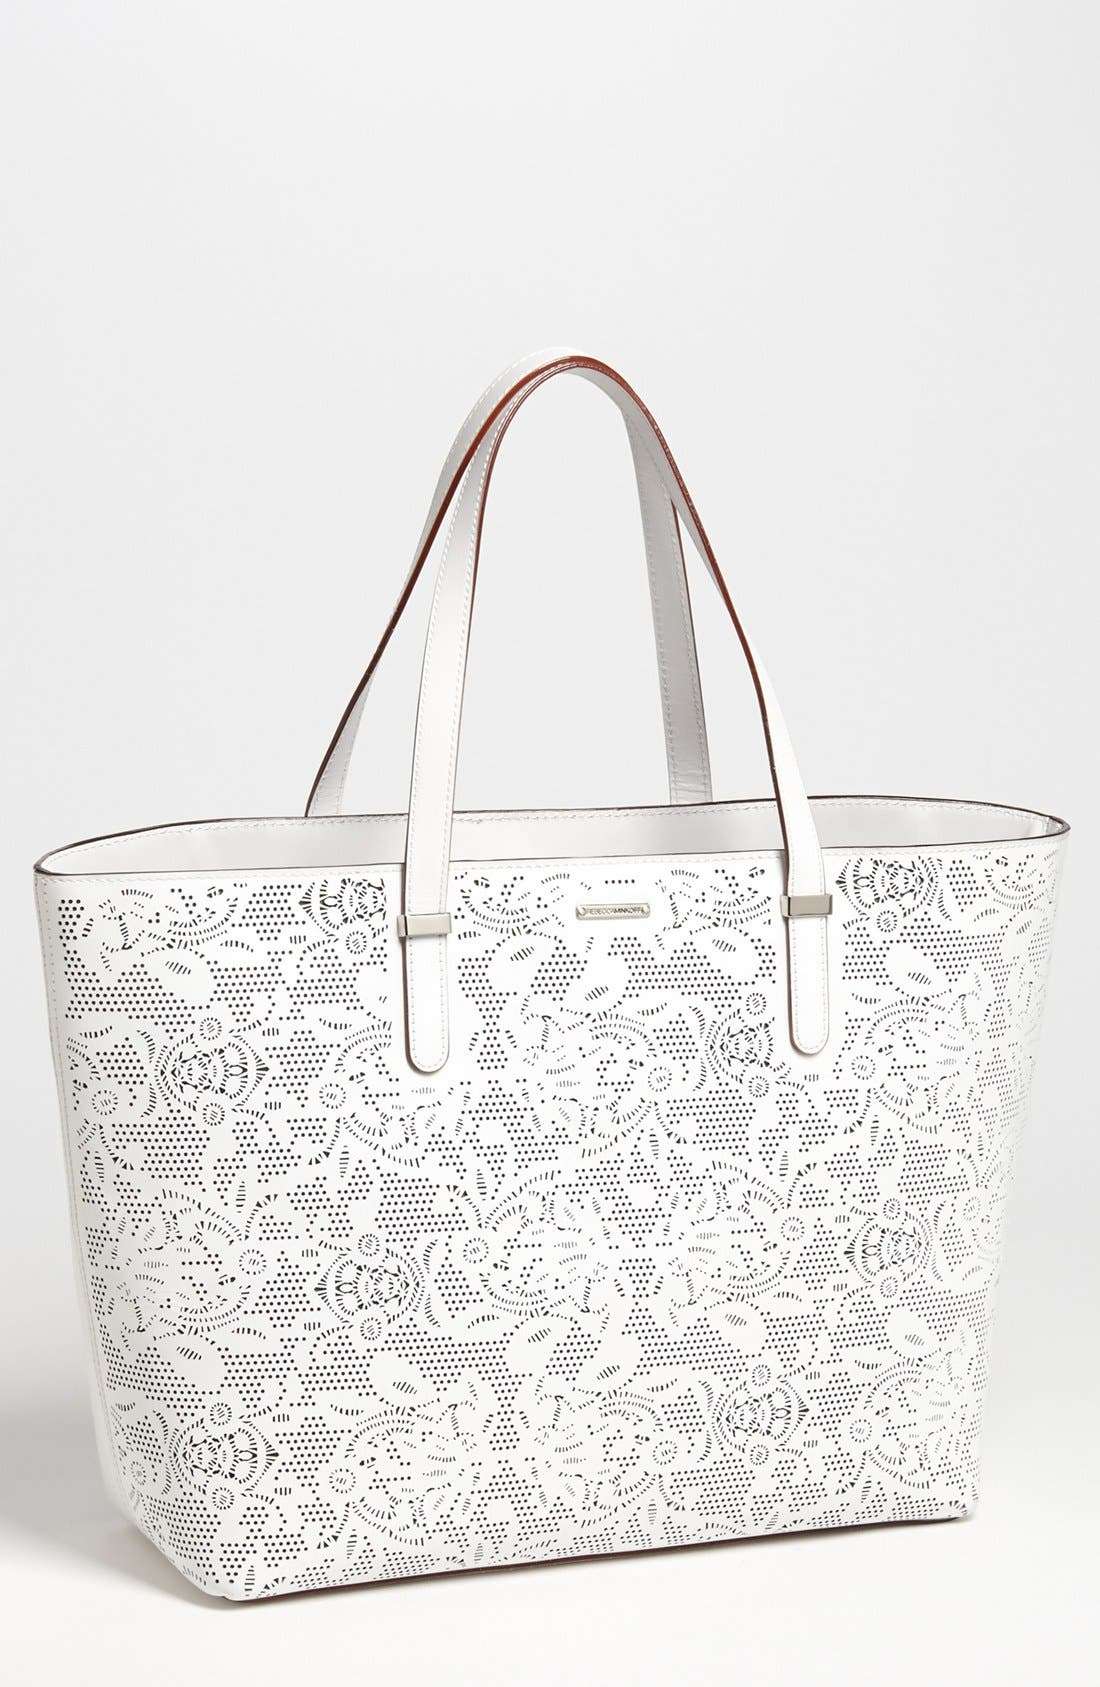 Alternate Image 1 Selected - Rebecca Minkoff 'Lasercut Perfection' Leather Tote